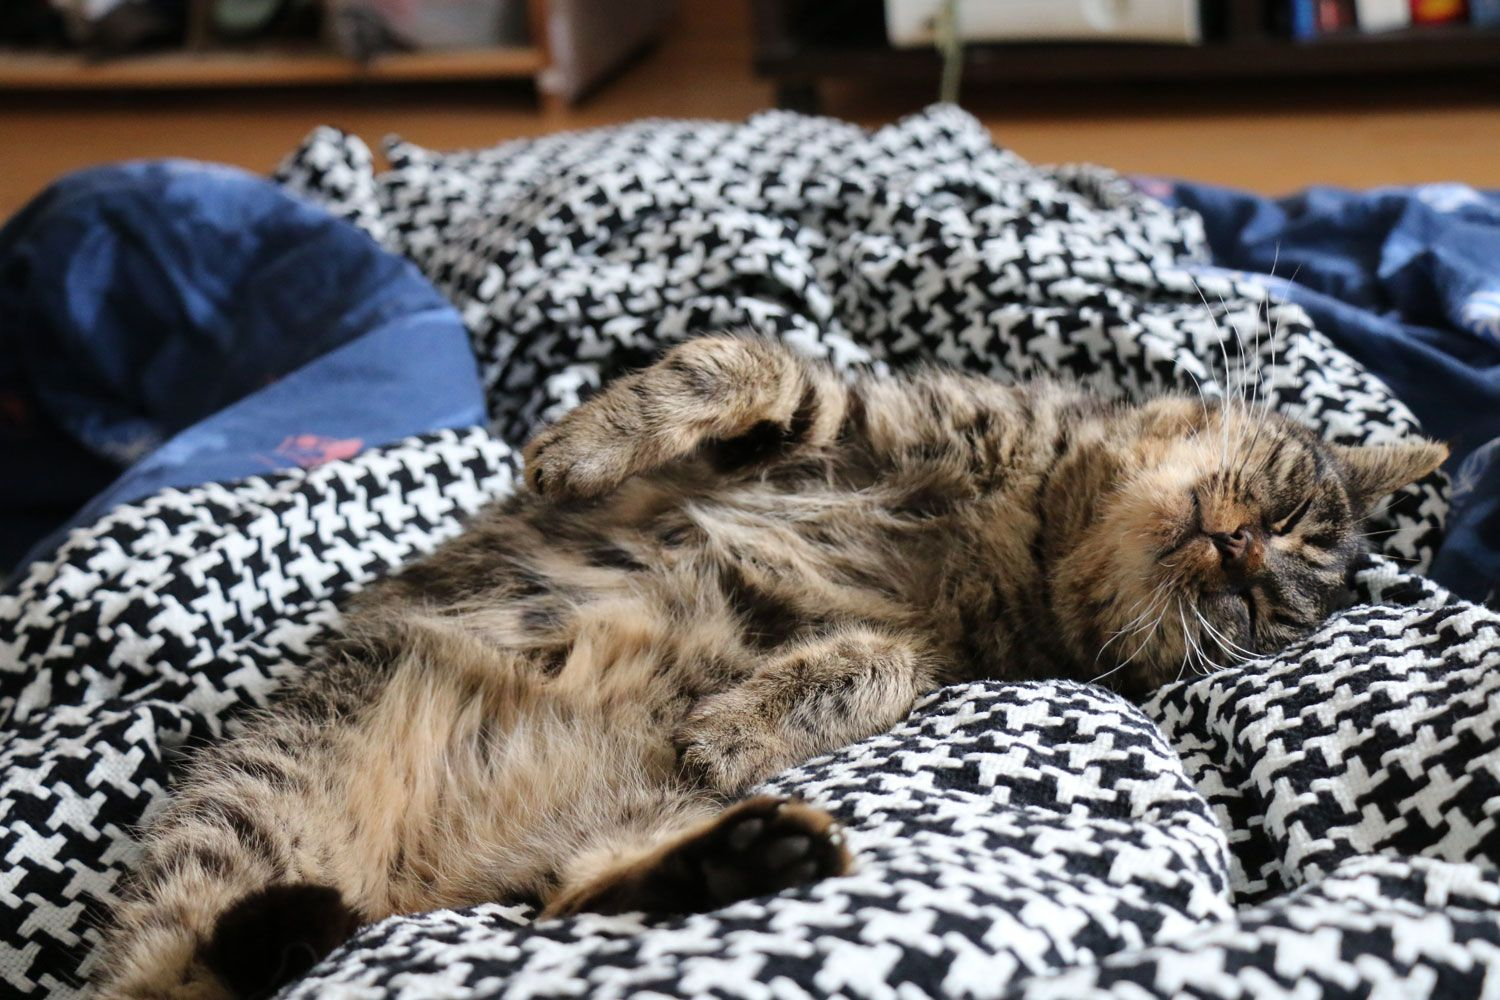 That belly fur is my demise   http://ift.tt/1RejMPx via /r/cats http://ift.tt/1RFKhh9  cats funny pictures